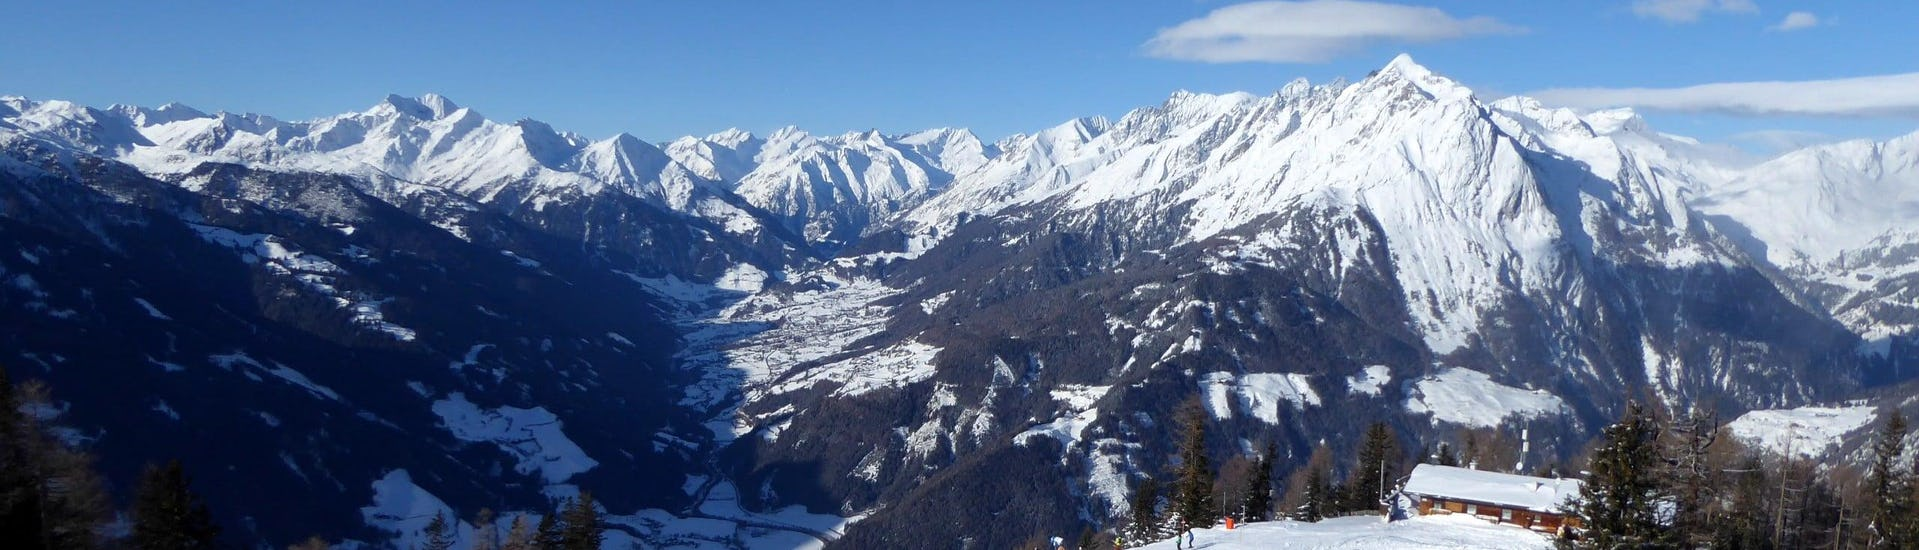 View over the sunny mountain landscape while learning to ski with the ski schools in Kals am Großglockner.